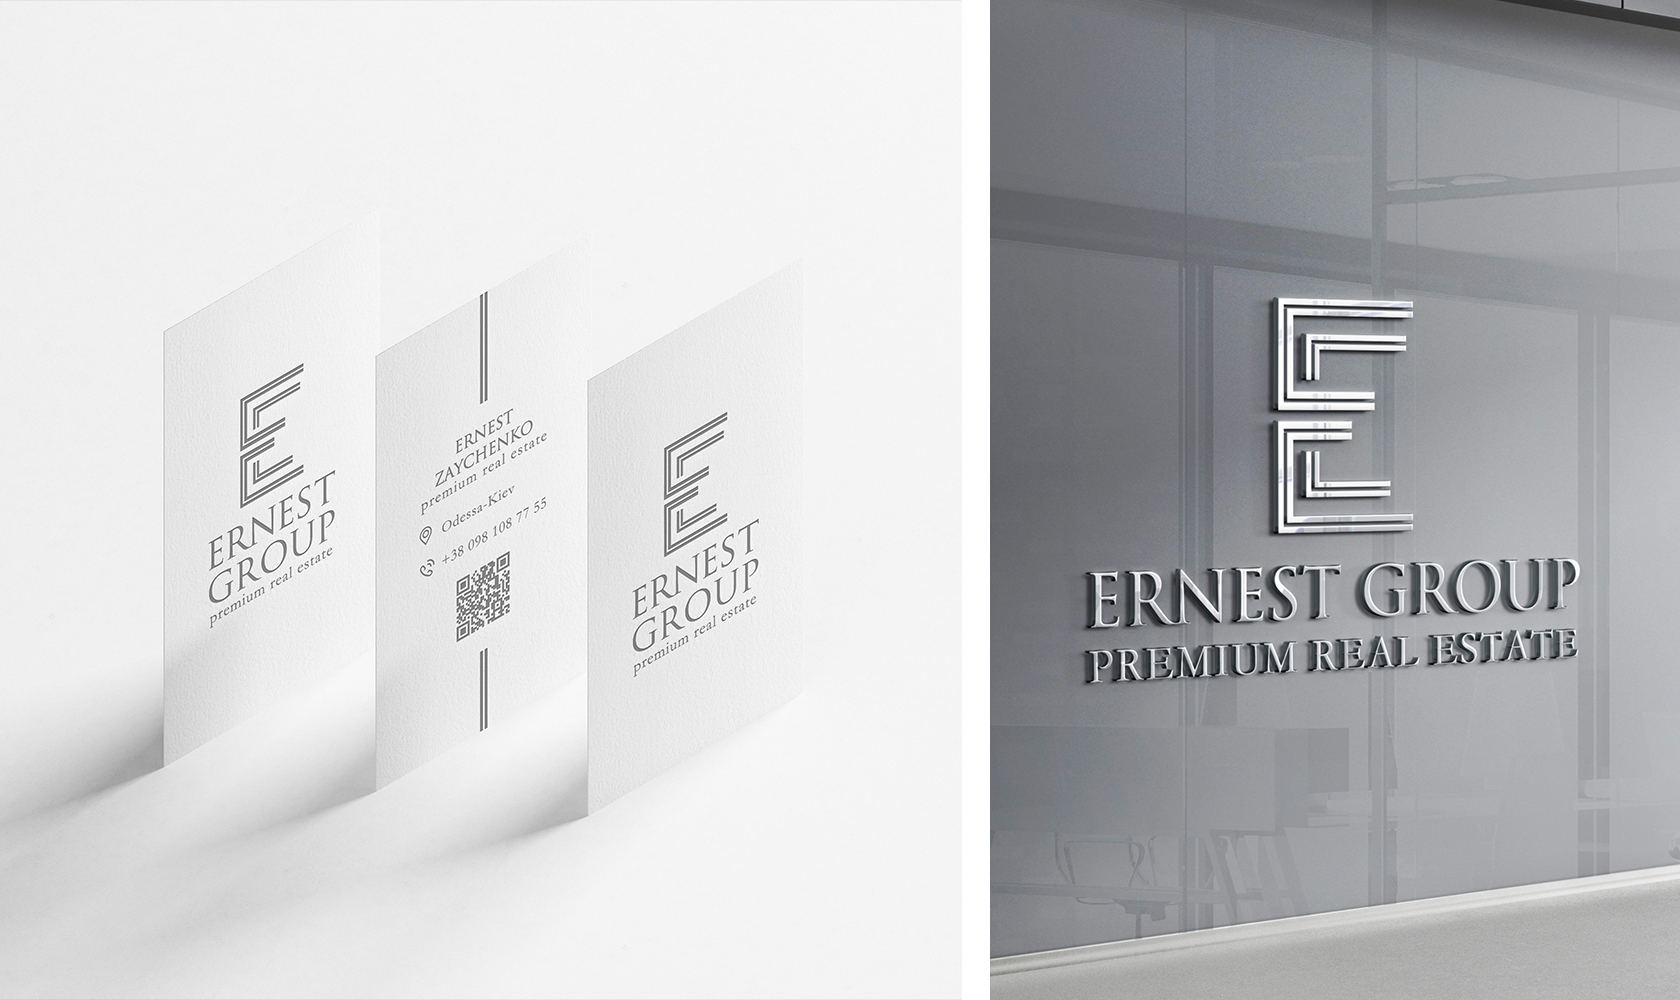 Ernest Group bussiness cards